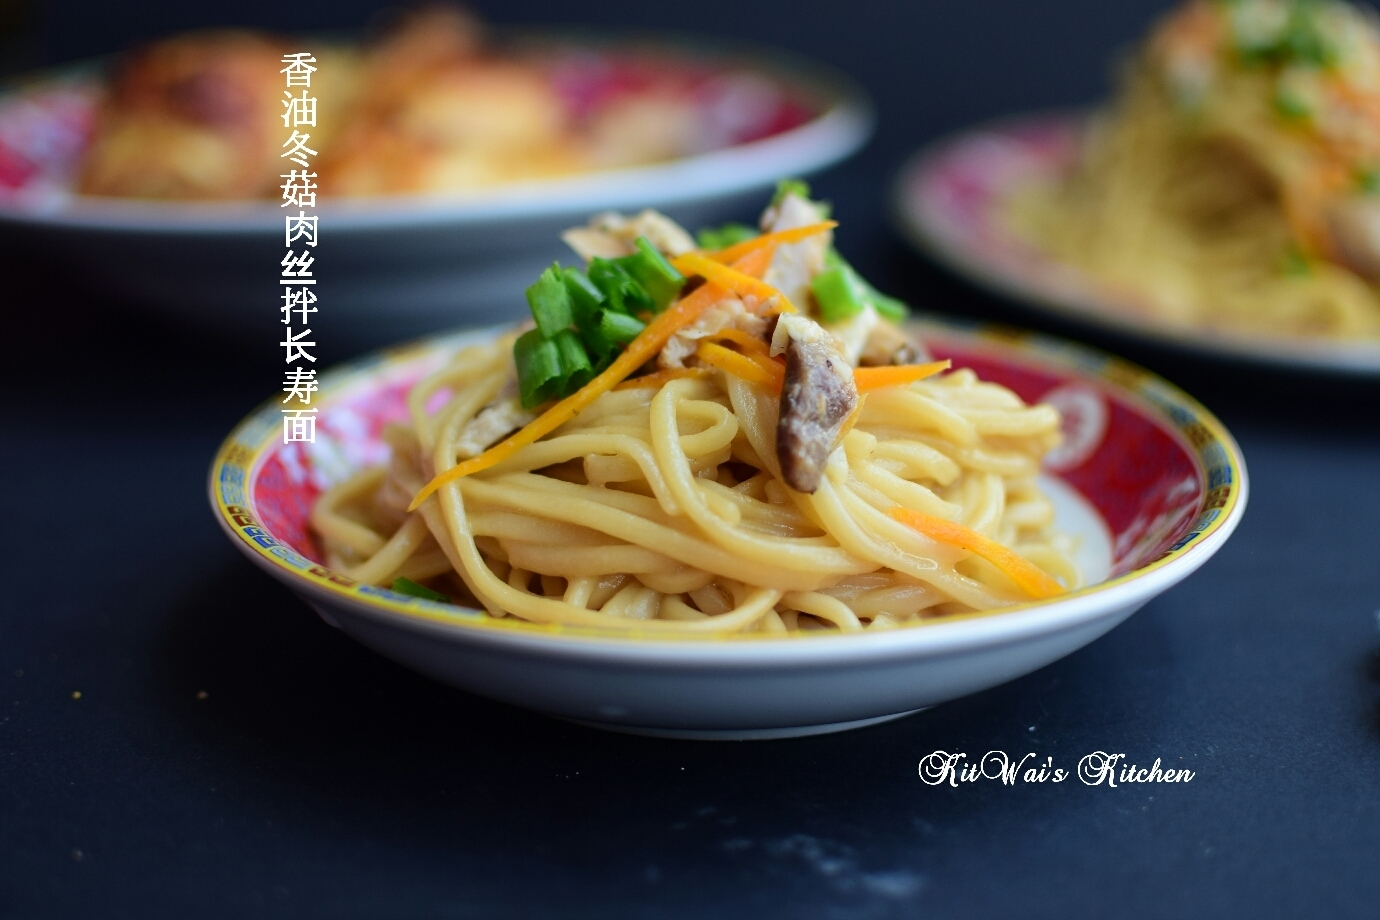 香油冬菇肉丝拌长寿面 ~ Egg Noodles with Mushrooms & Pork in Fragrant Oil